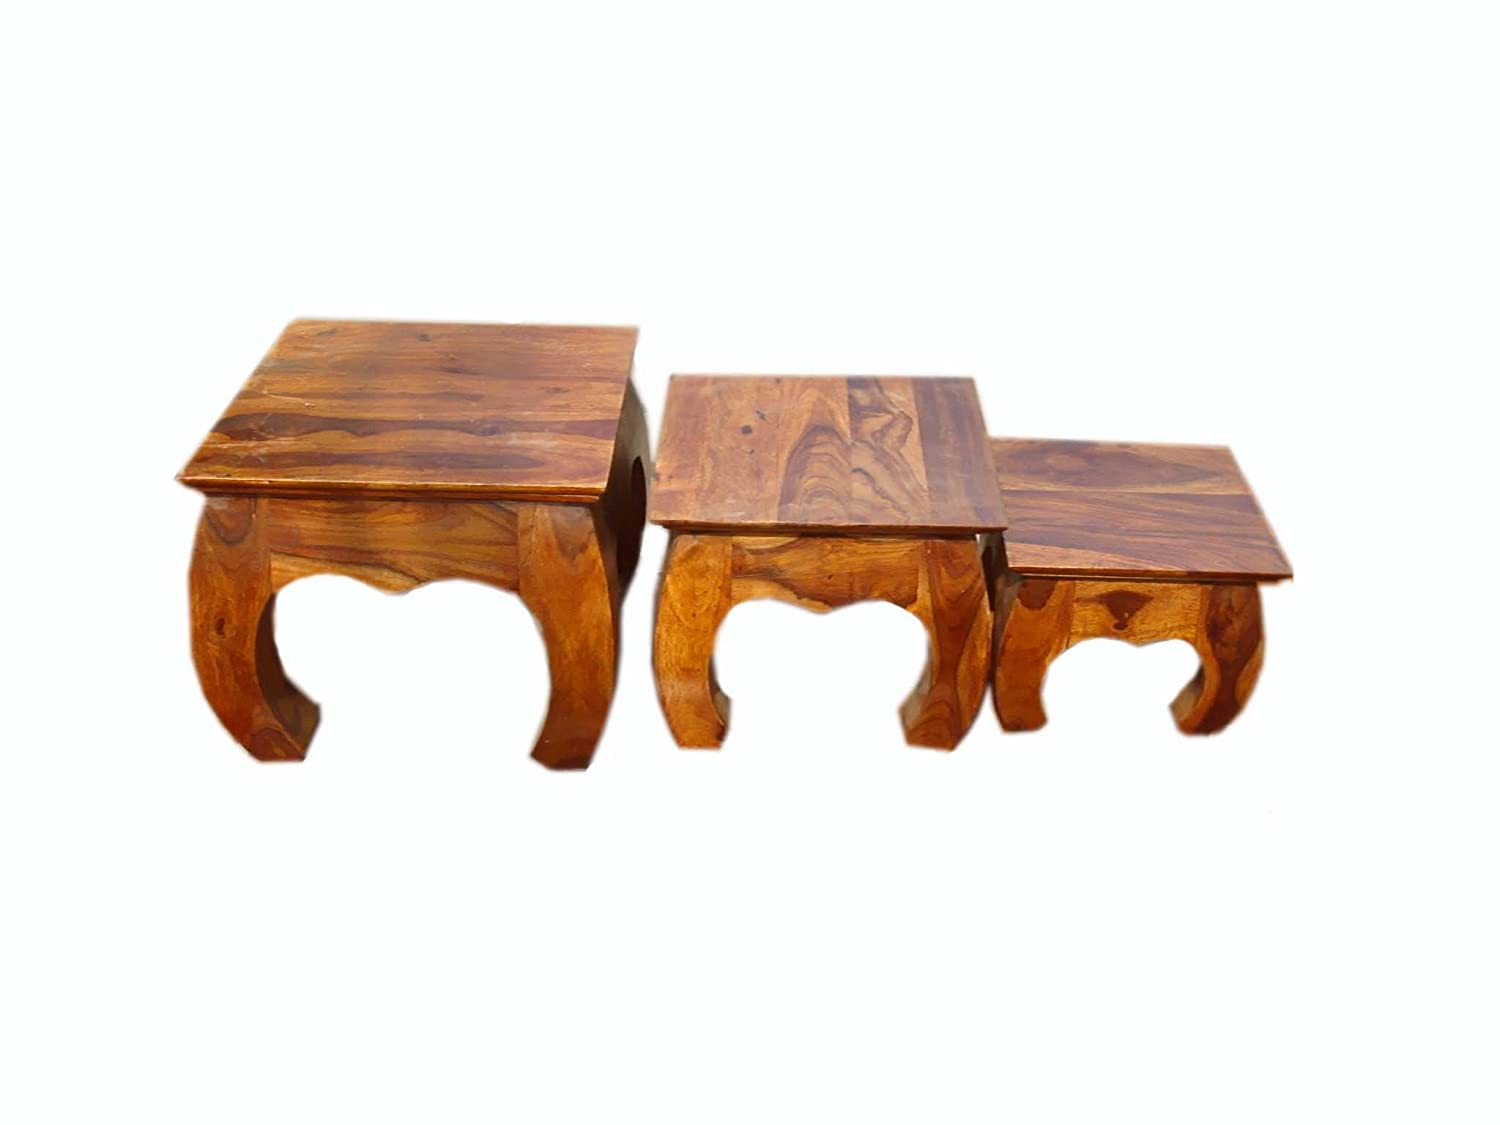 Solid Wood Sheesham Nesting Table/End Table/Bedside Table Set of 3